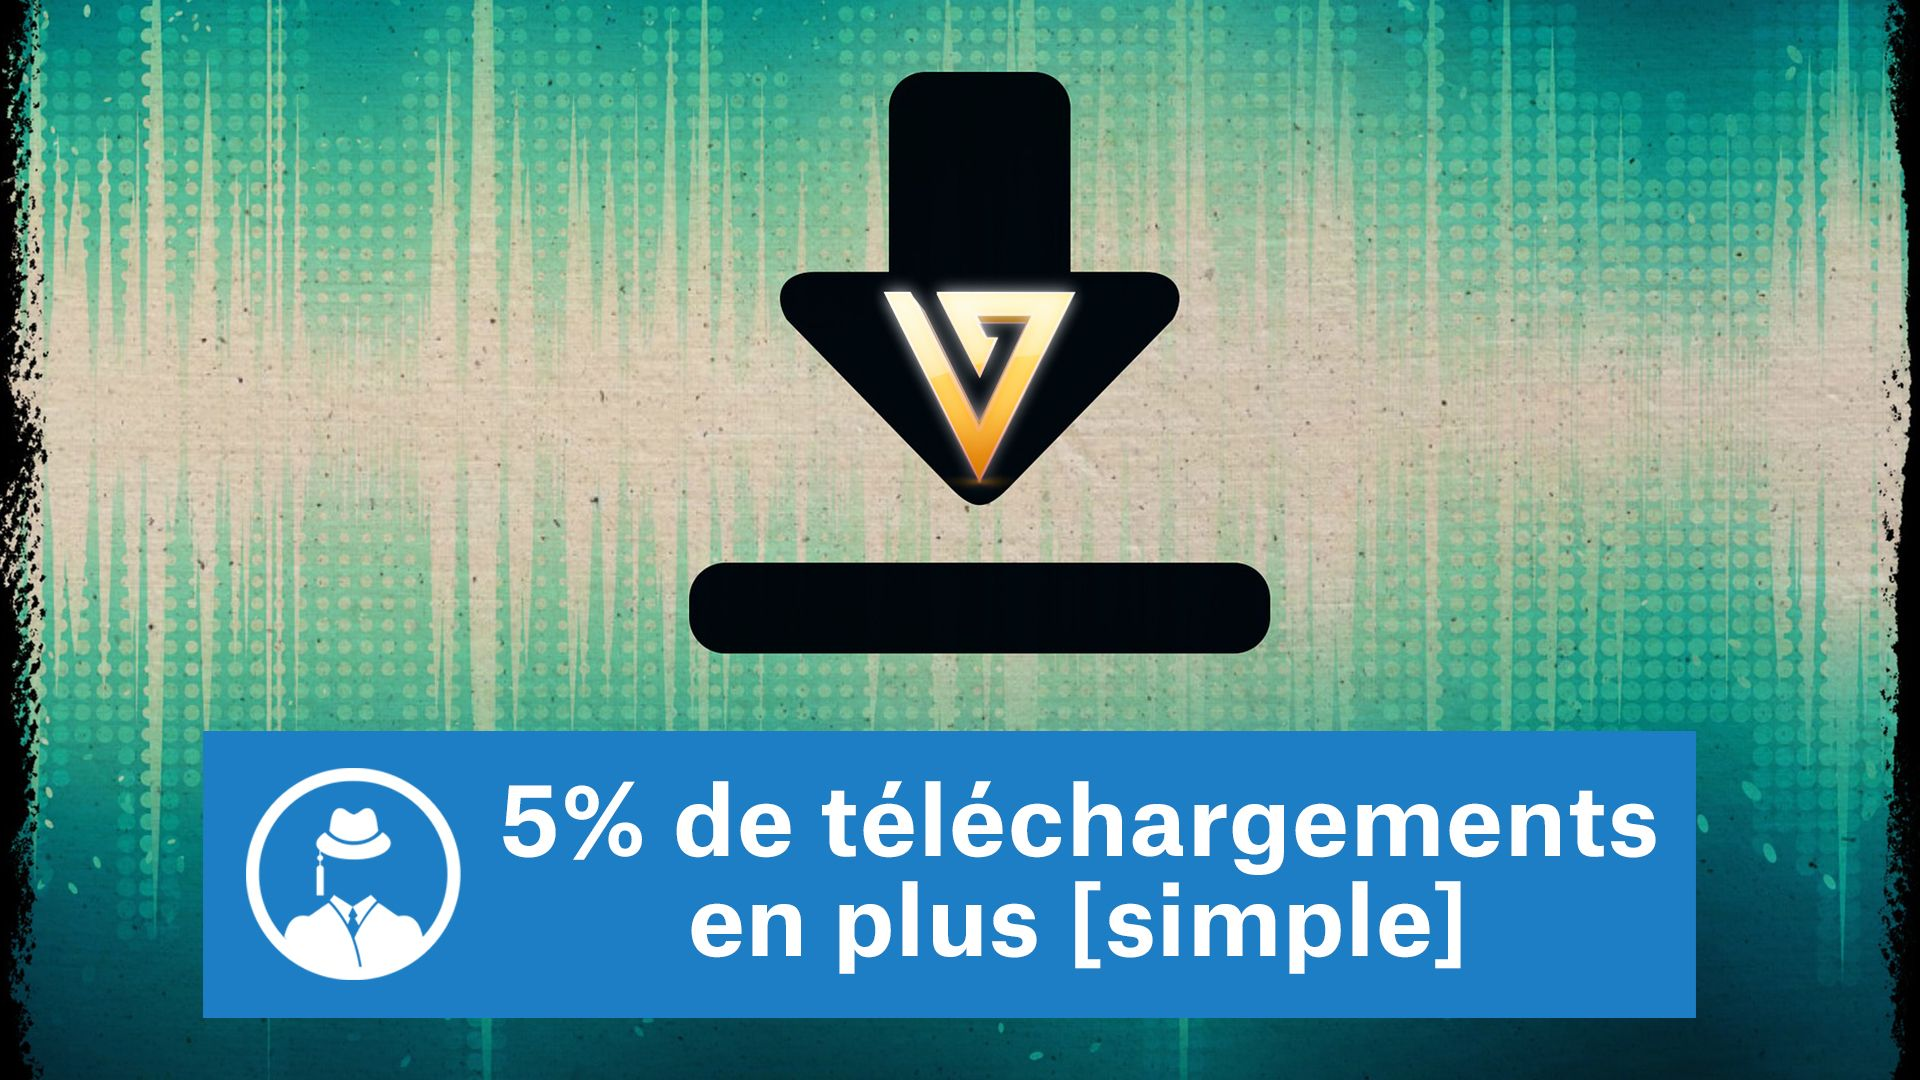 5% de téléchargements en plus [simple] #GrowthHacking #WebMarketing #FormationGrowthHacking #CentreDeFormationFrance #TunnelAARRR #AARRR #SocialMedia #CommunityManagement #SEO #MarketingDigital #SiteWeb